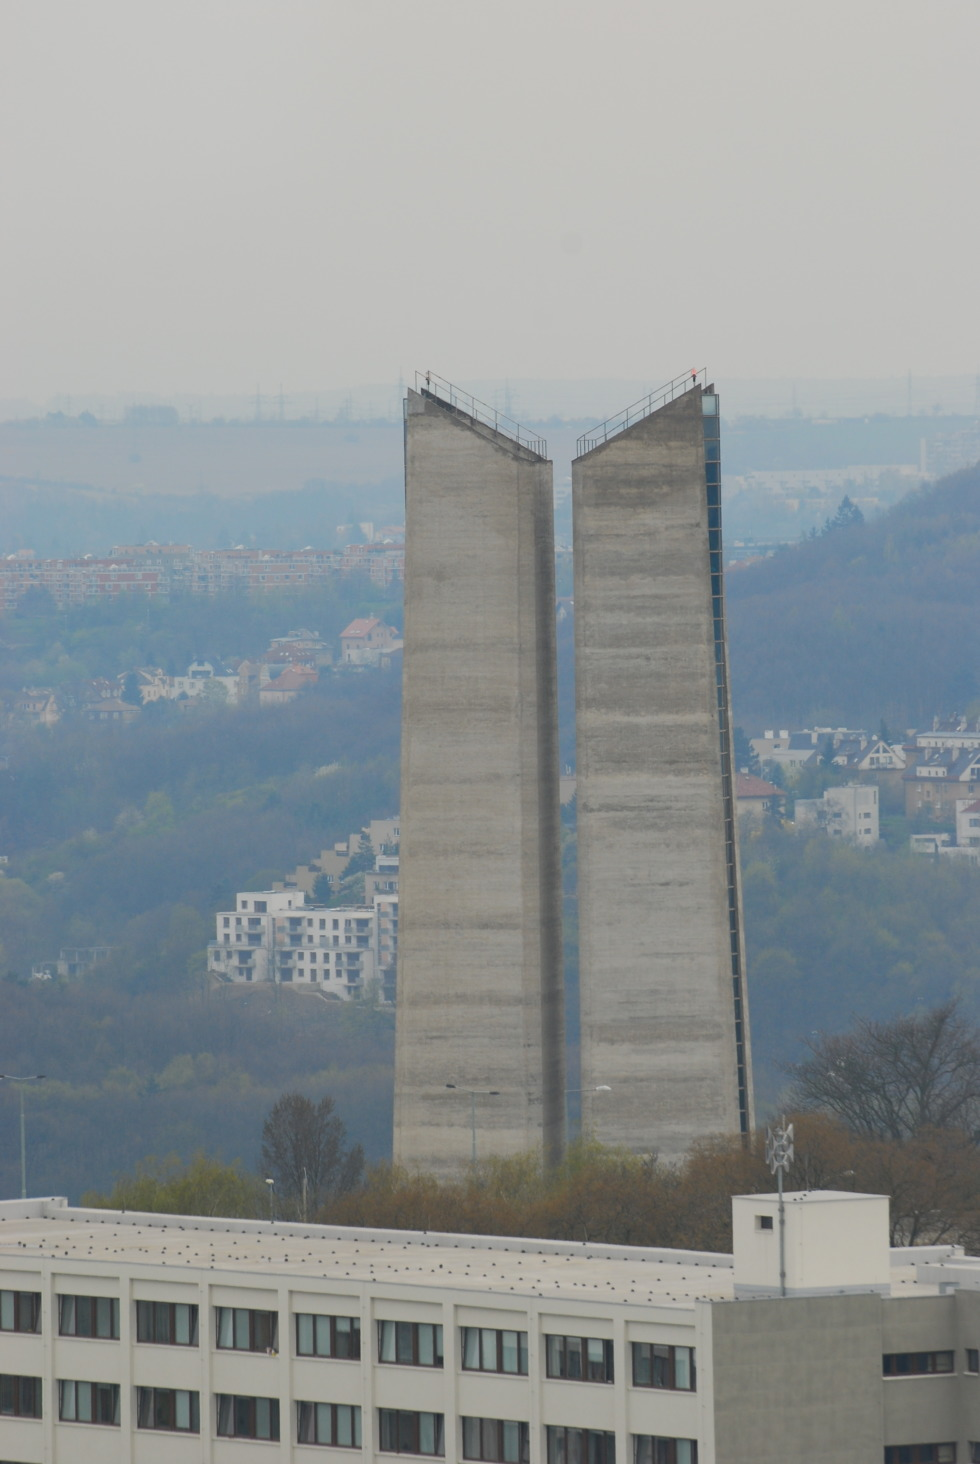 Ventilation tower for tunnel system in Strahov, Prague